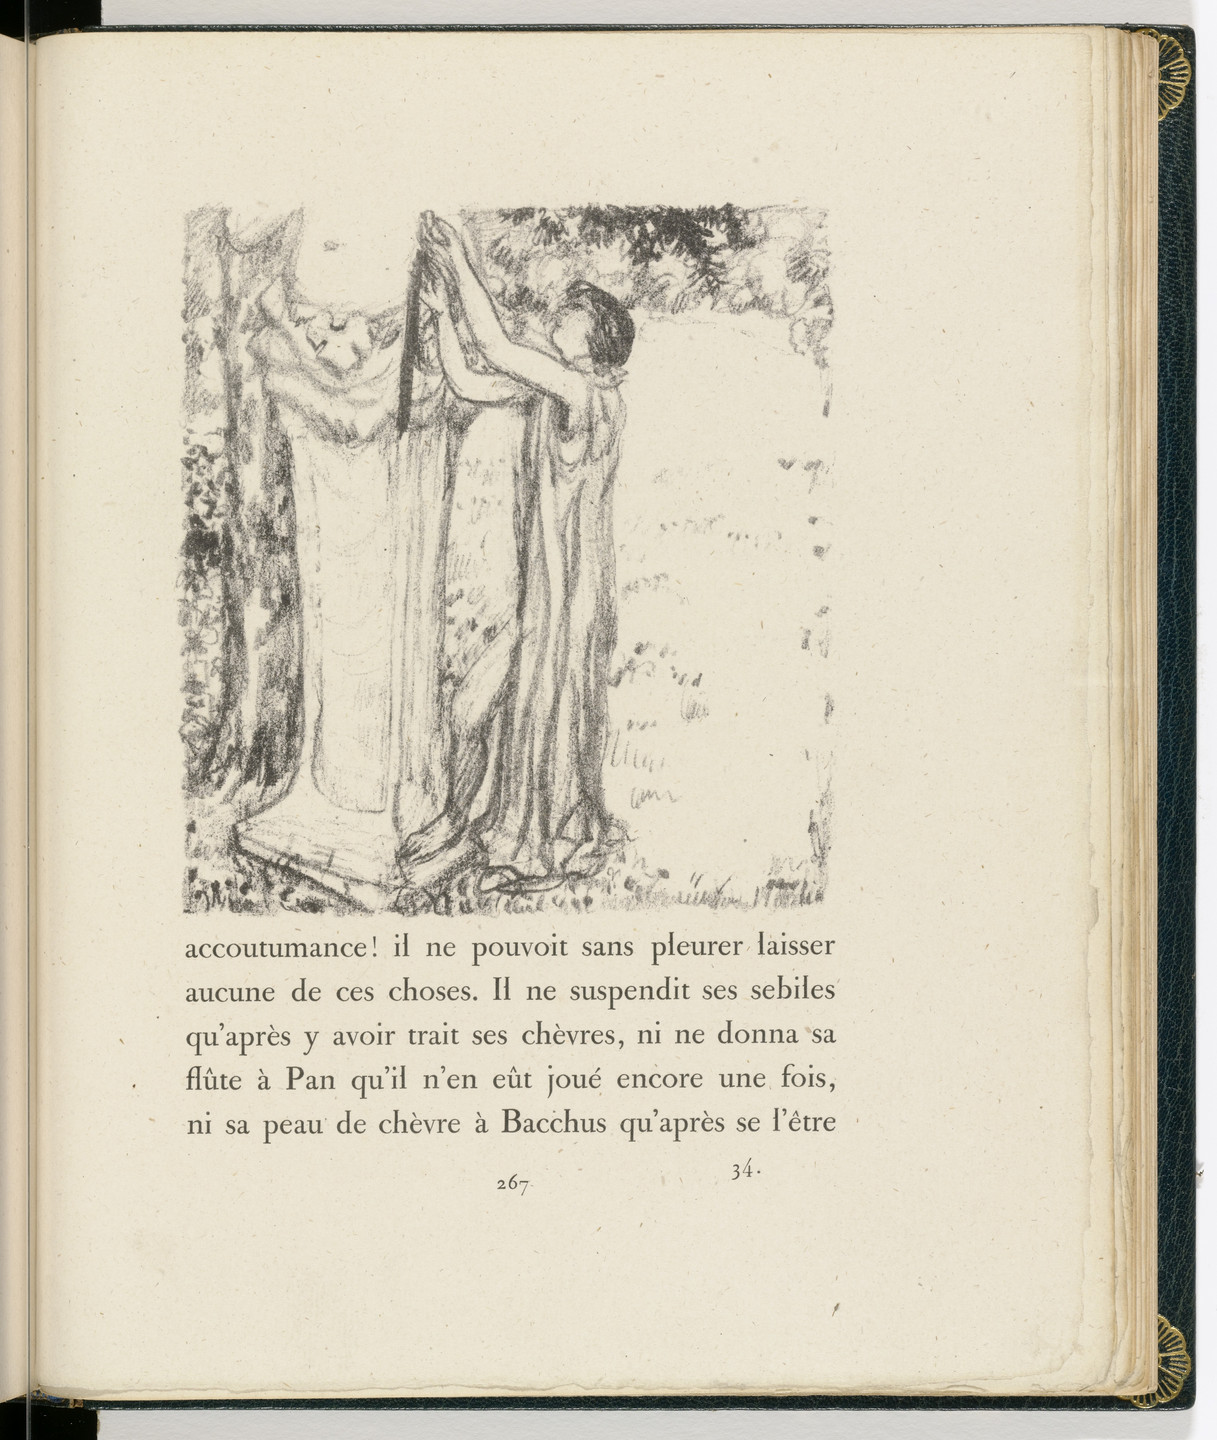 Pierre Bonnard. In-text plate (page 267) from Daphnis et Chloé. 1902